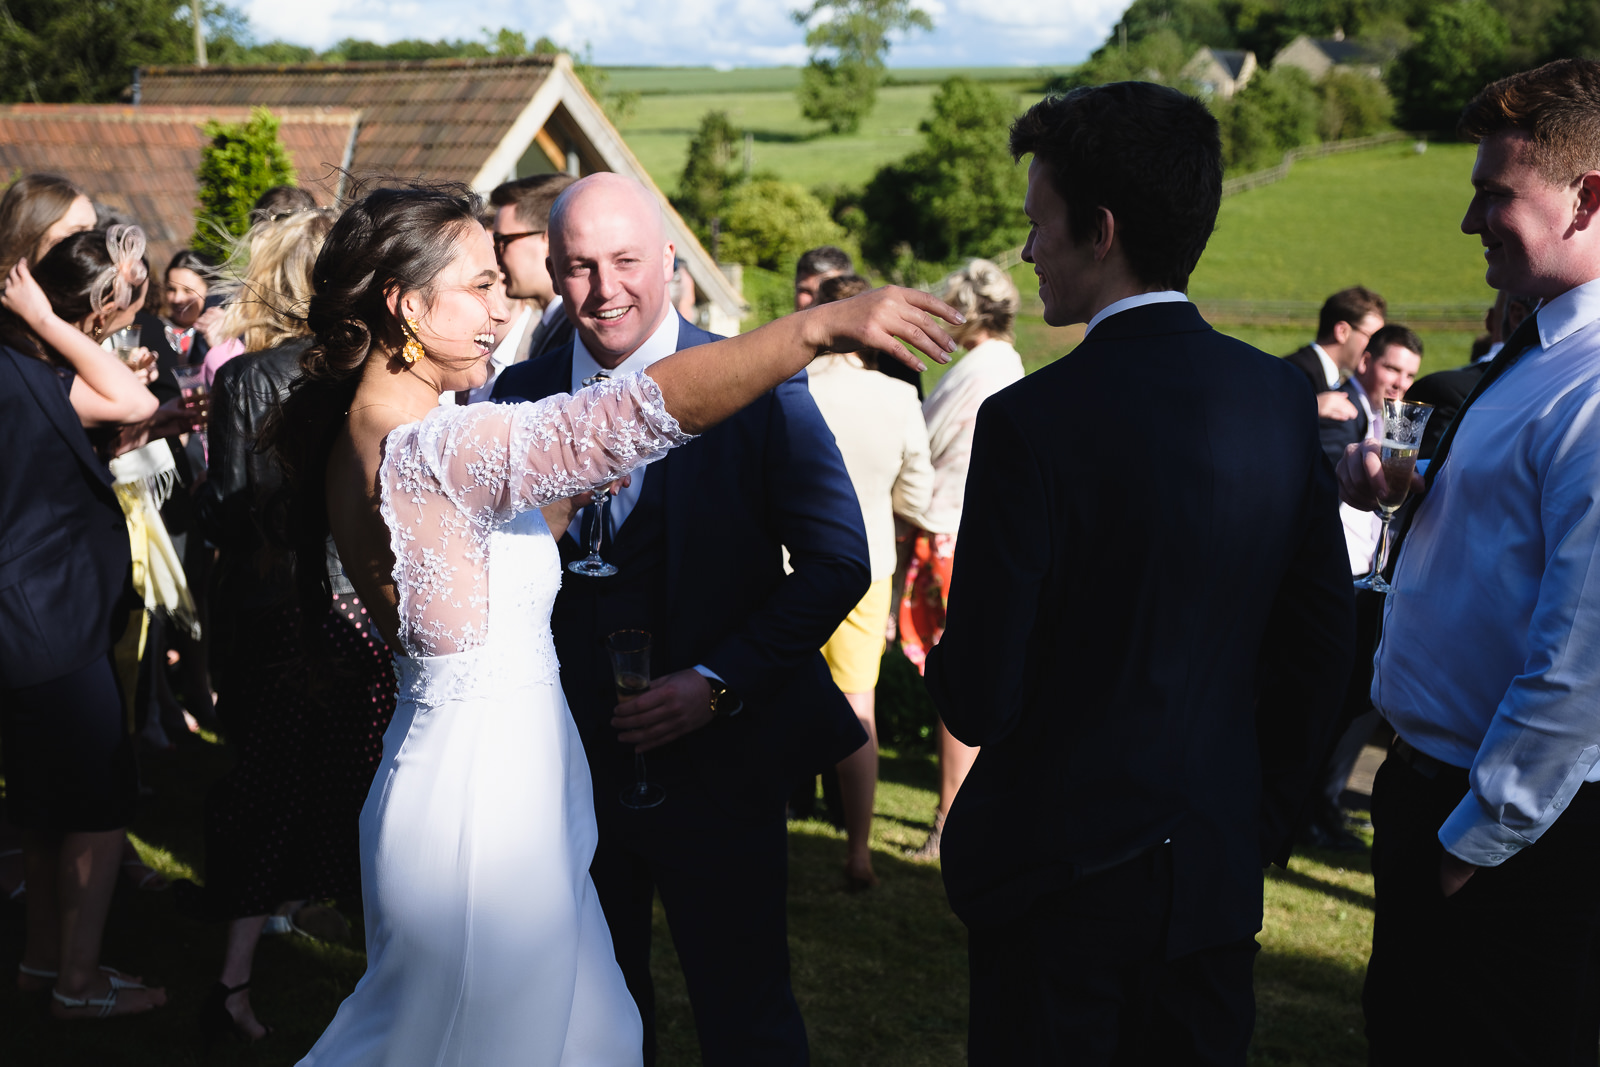 Wedding photography with bride welcoming and embracing a guest